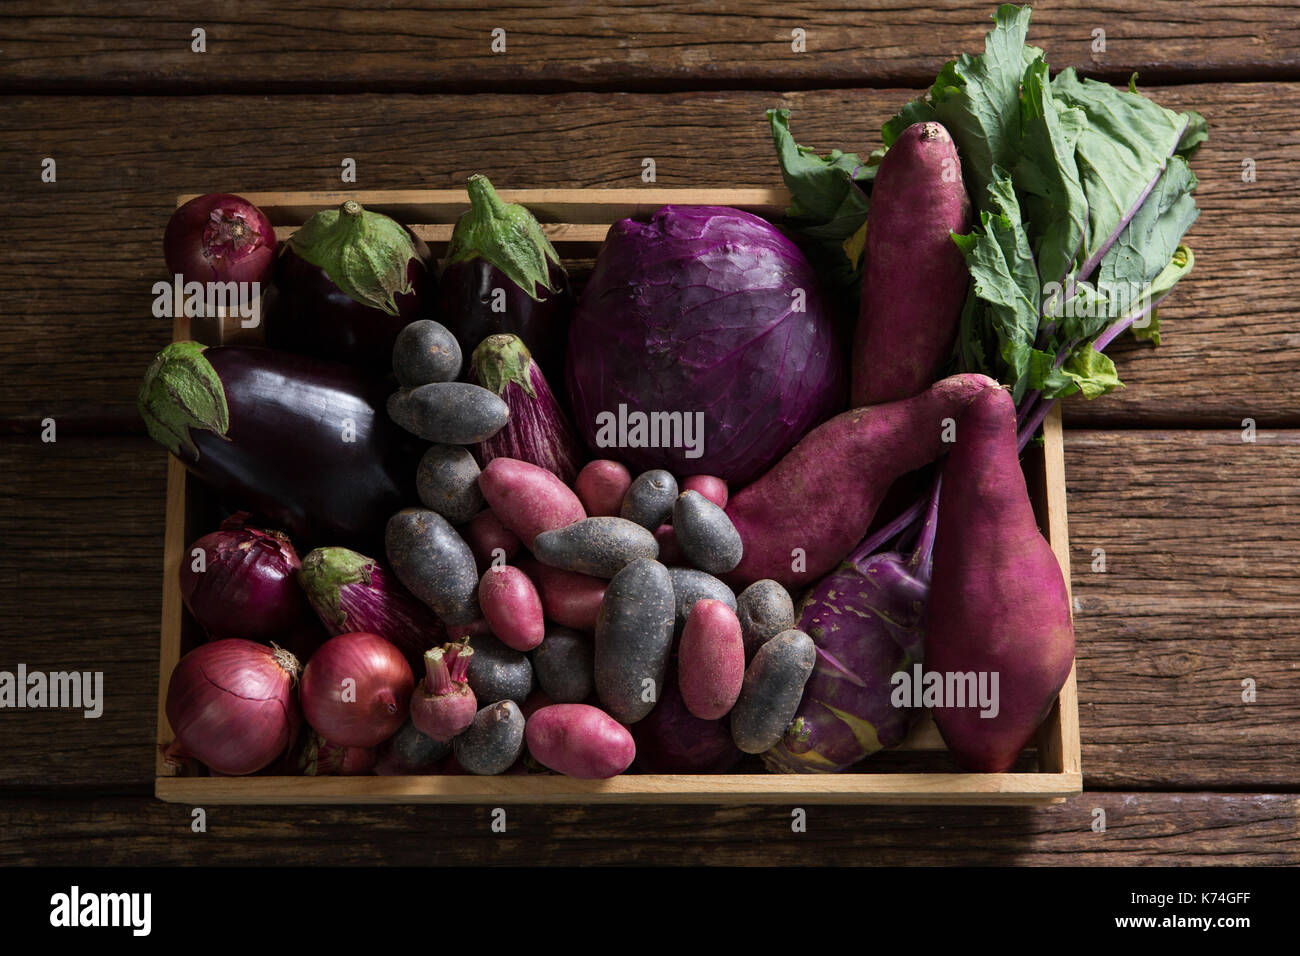 Overhead of various vegetables on basket - Stock Image